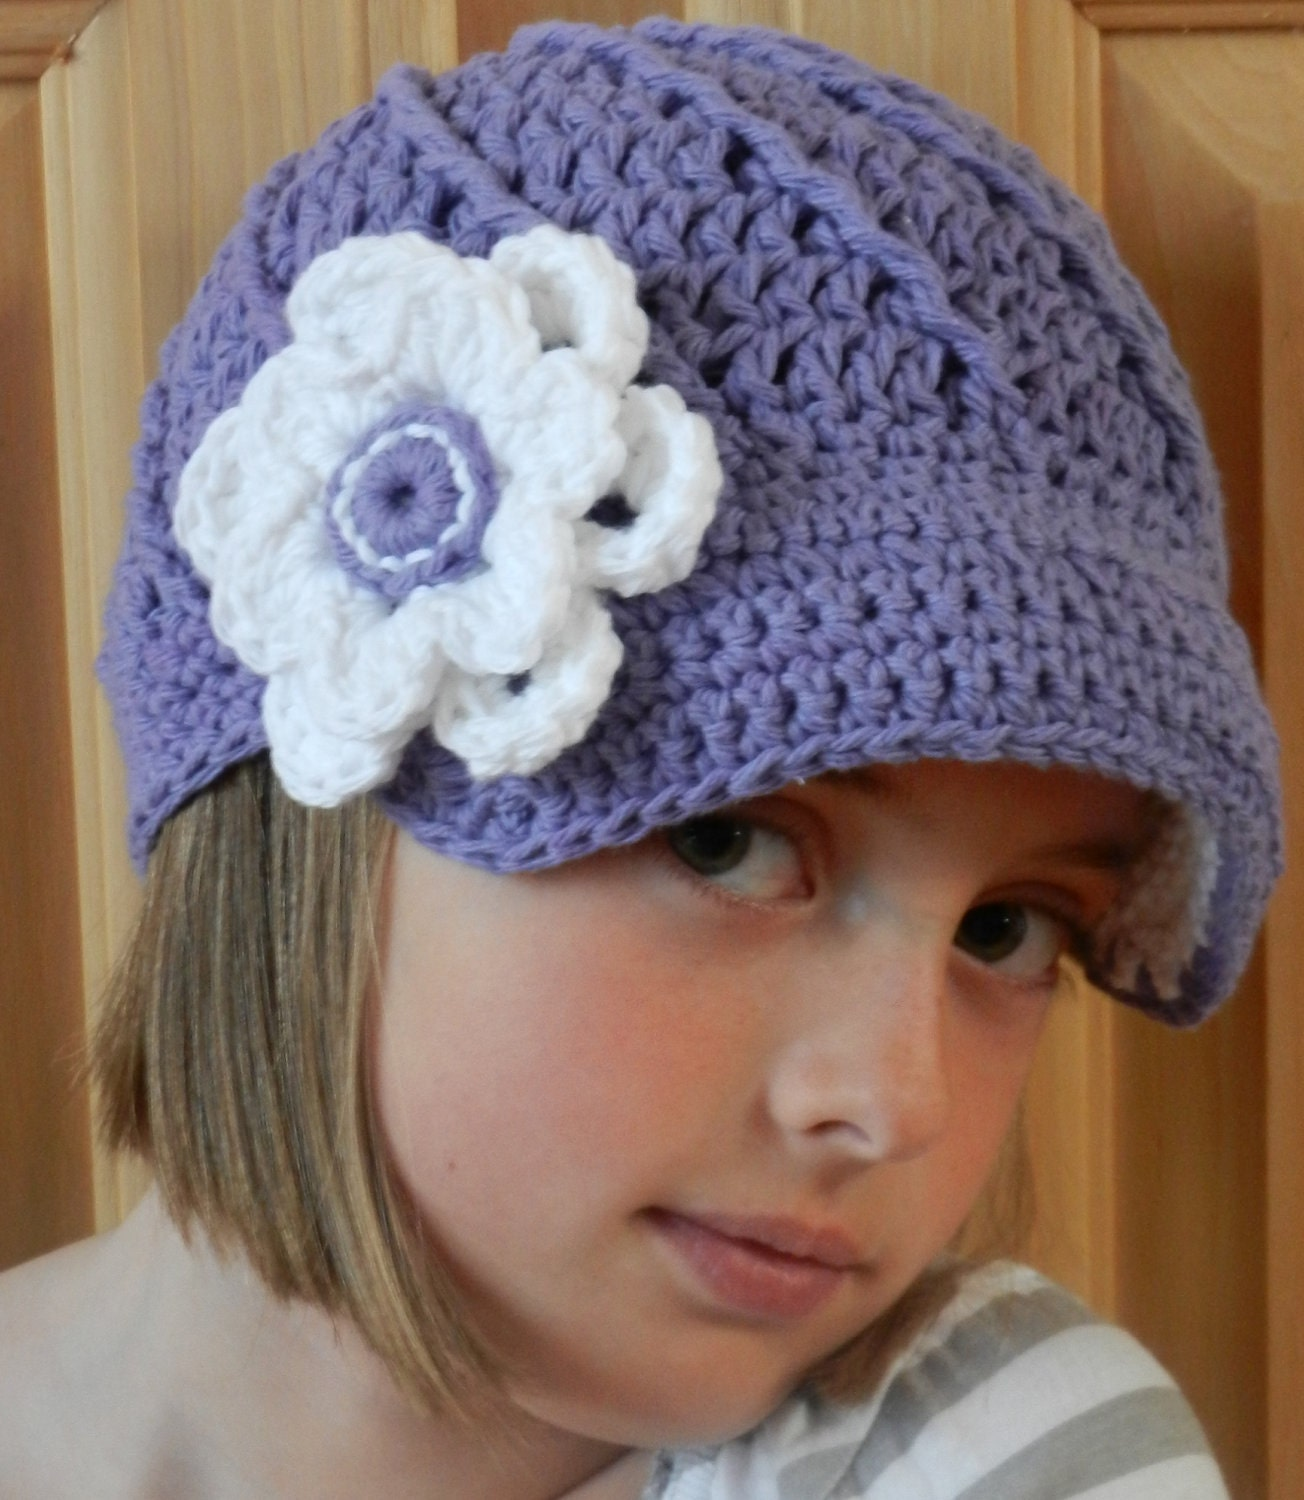 Free Crochet Pattern Newsboy Style Cap : Crochet Hat Pattern Twisted Newsboy Crochet Hat Pattern with